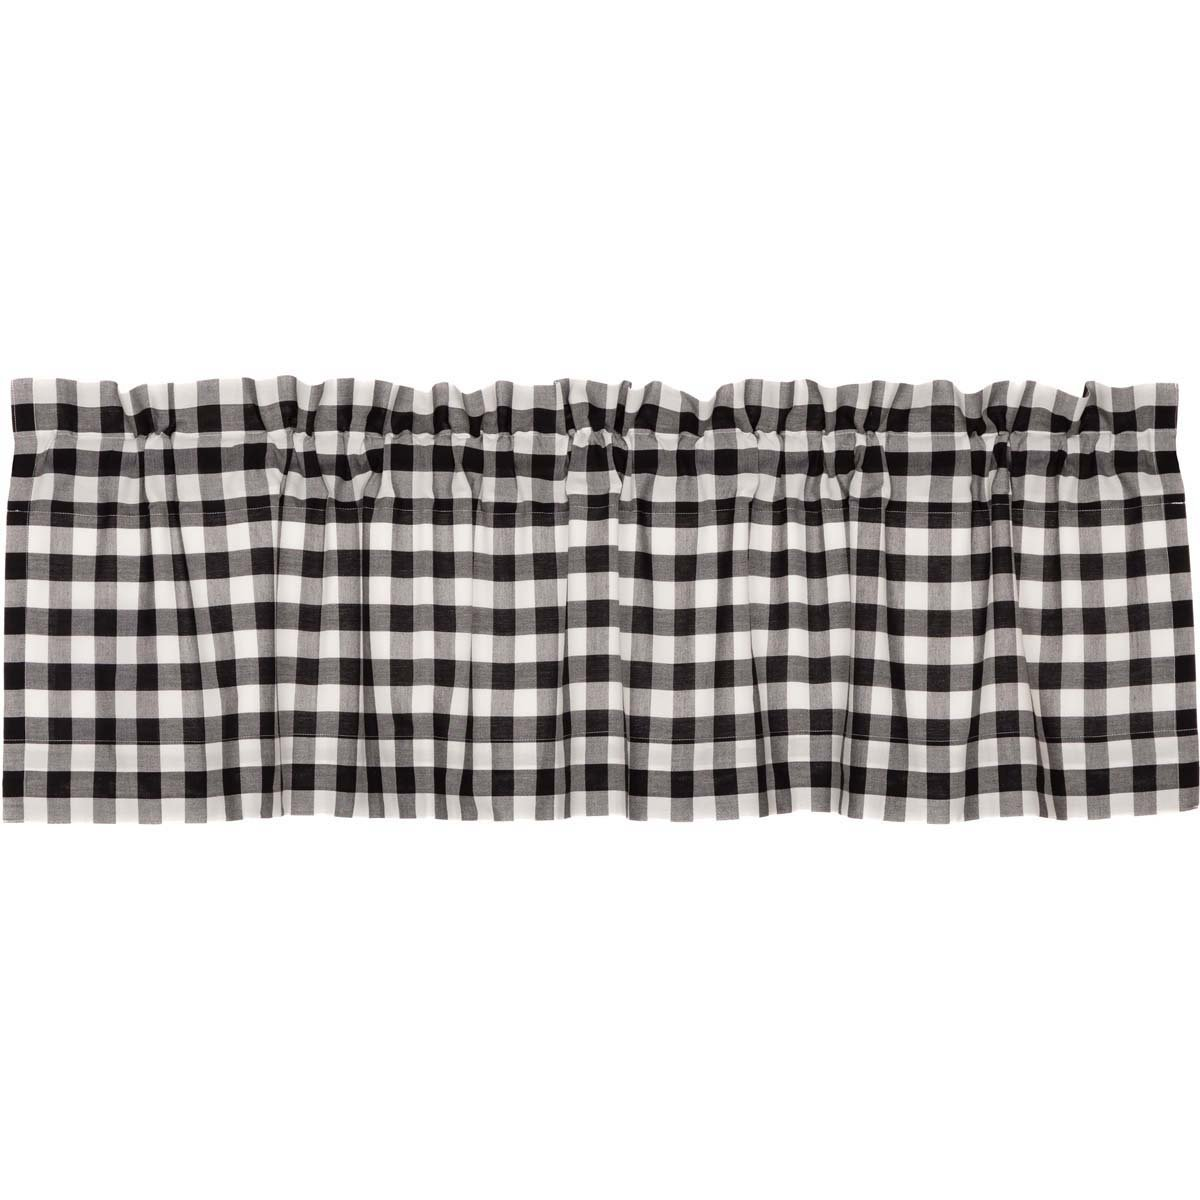 VHC Brands Classic Country Farmhouse Kitchen Window Curtains - Annie Buffalo Check White Lined Valance, 16'' x 60'', Black by VHC Brands